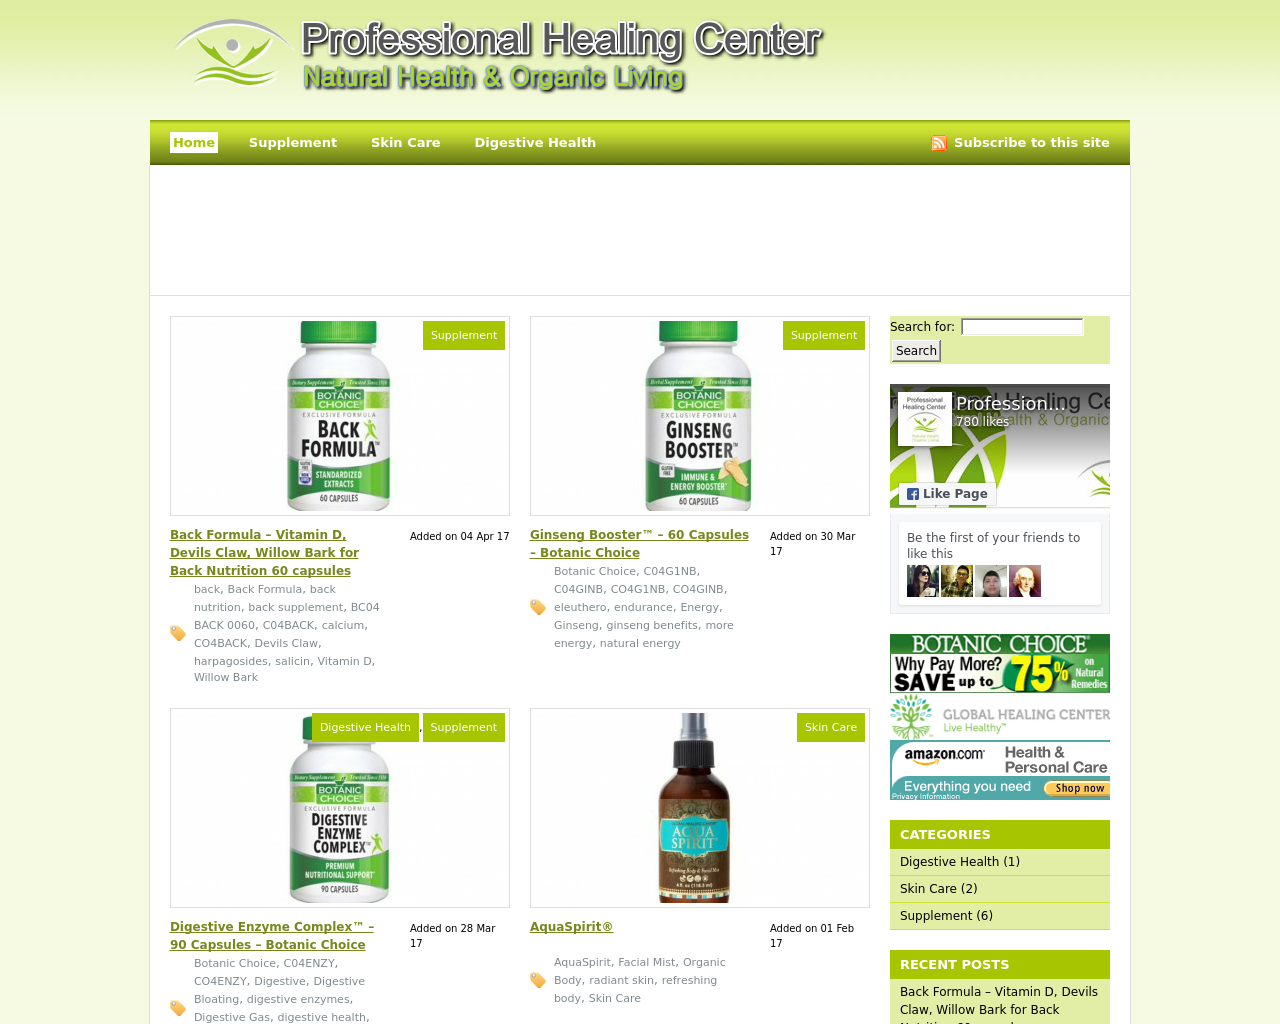 Professional-Healing-Center-Advertising-Reviews-Pricing